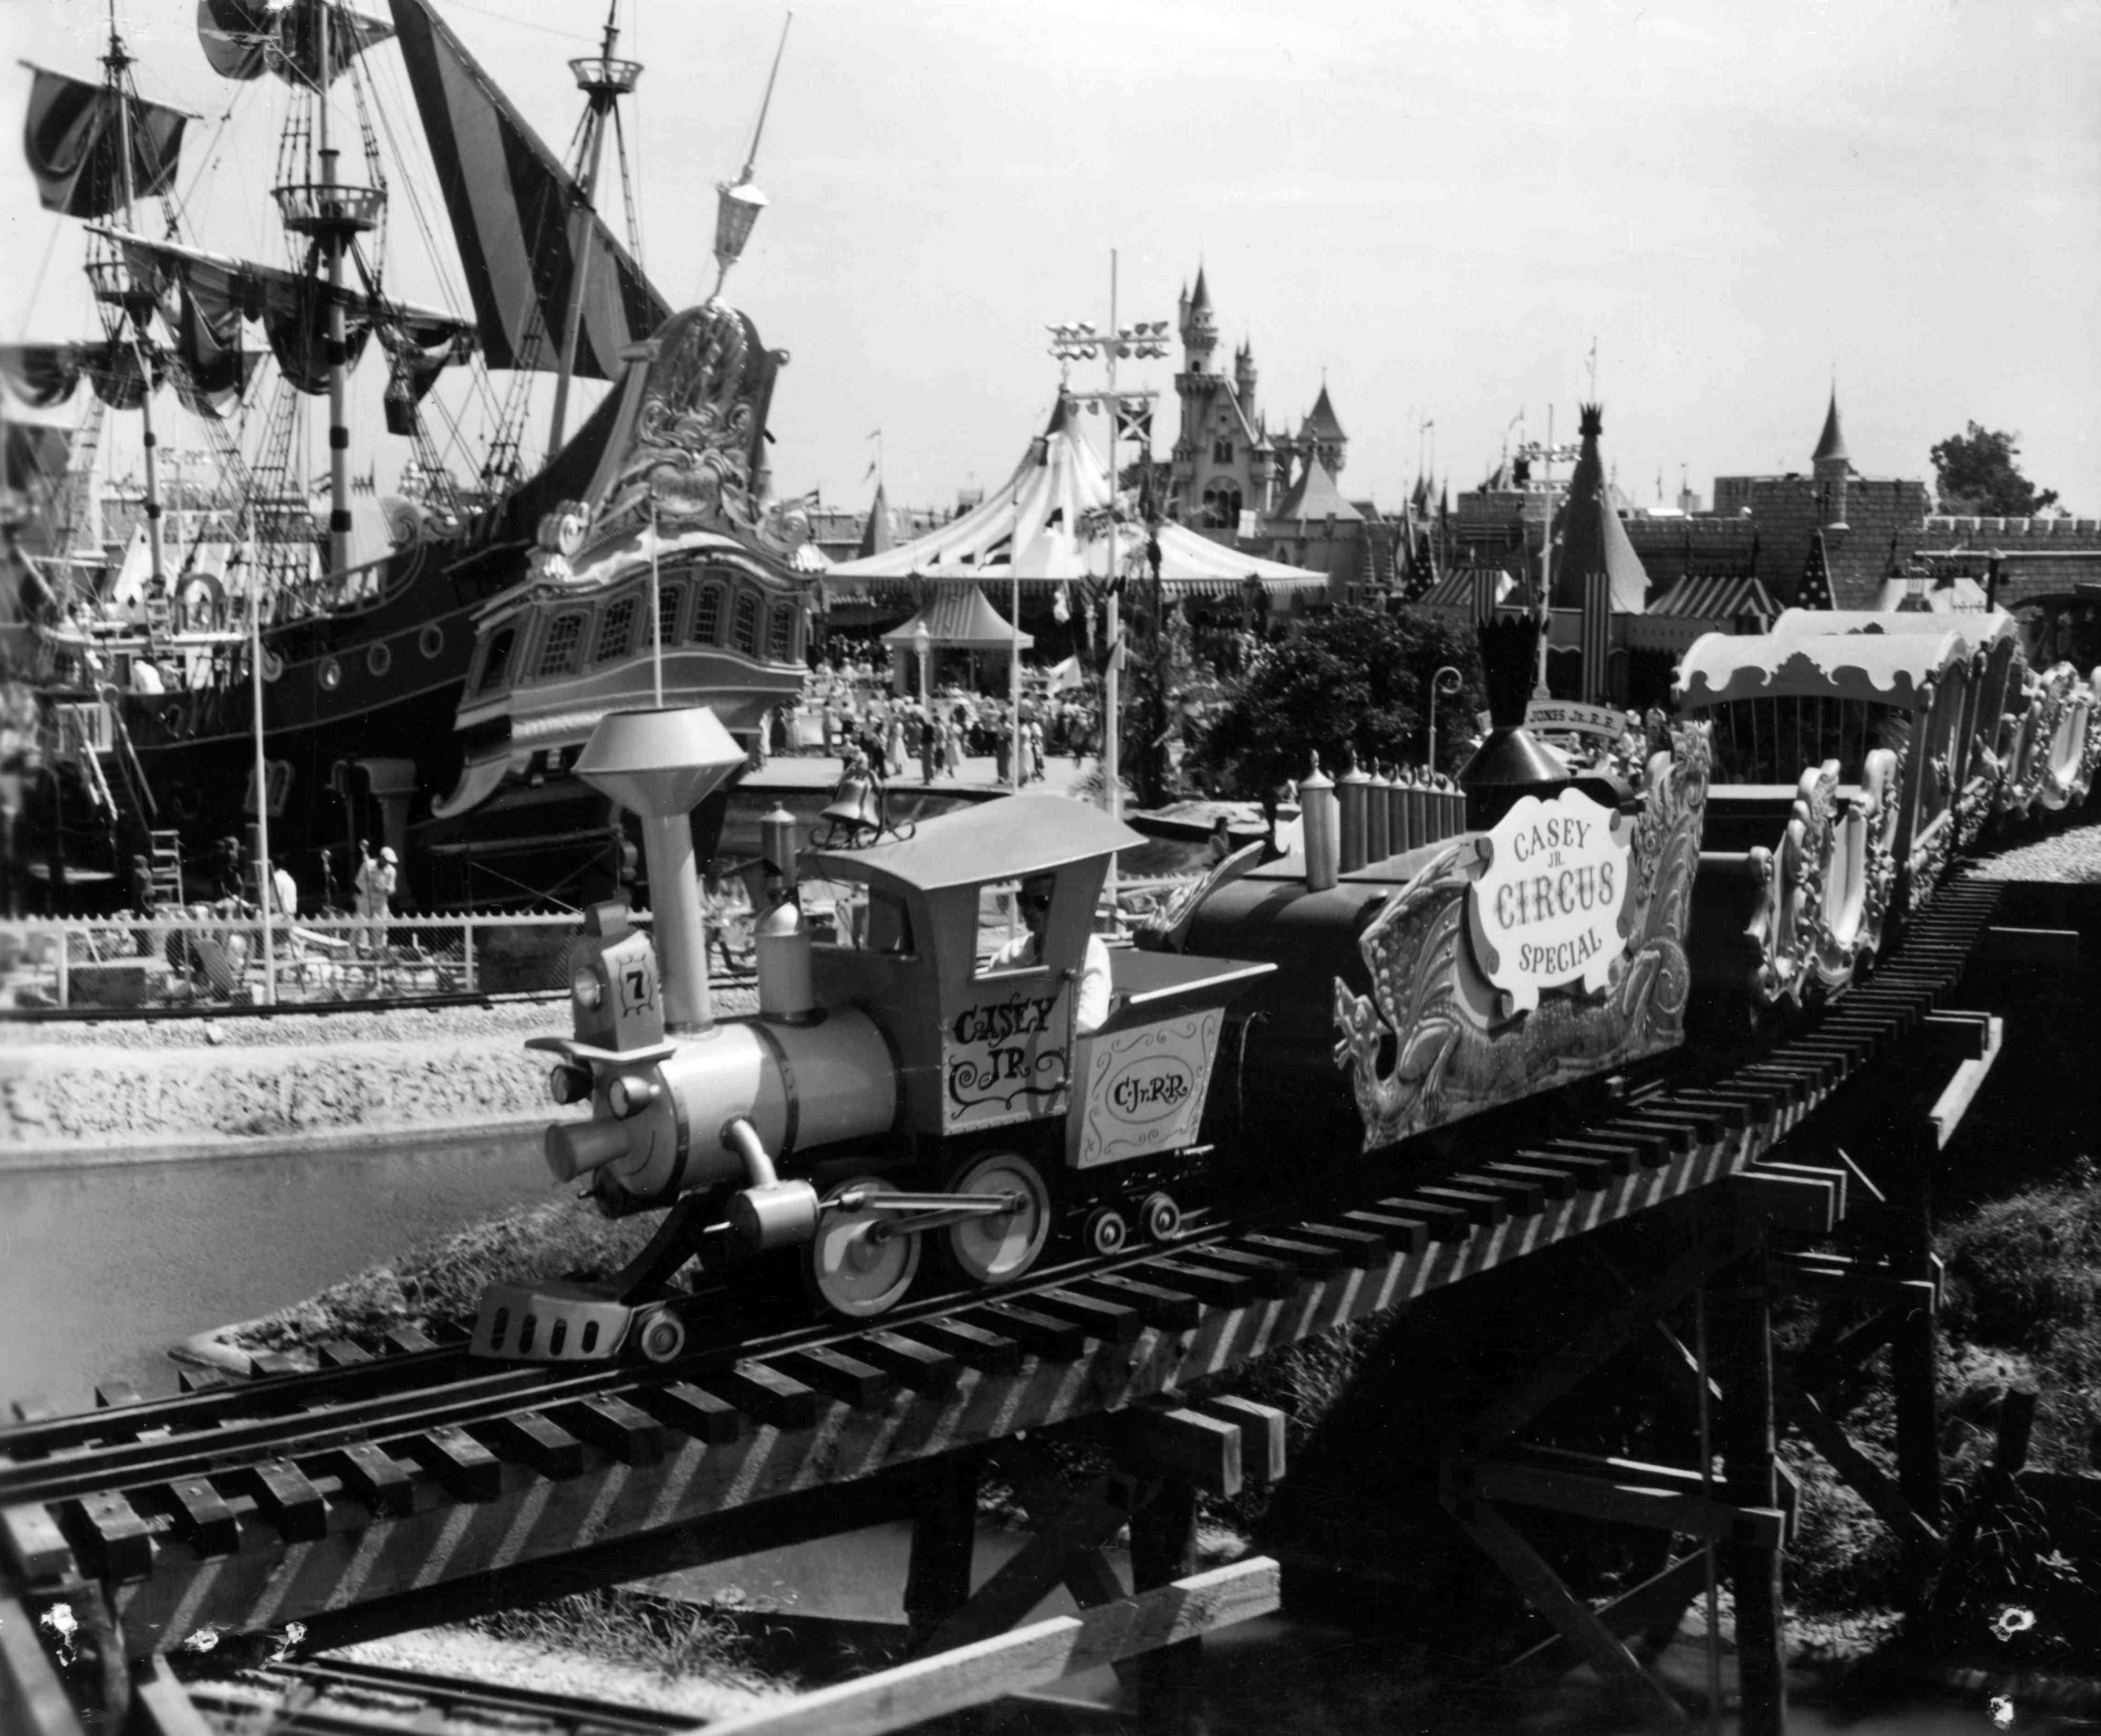 Opening Day to Today: Original Disneyland Attractions Then and Now